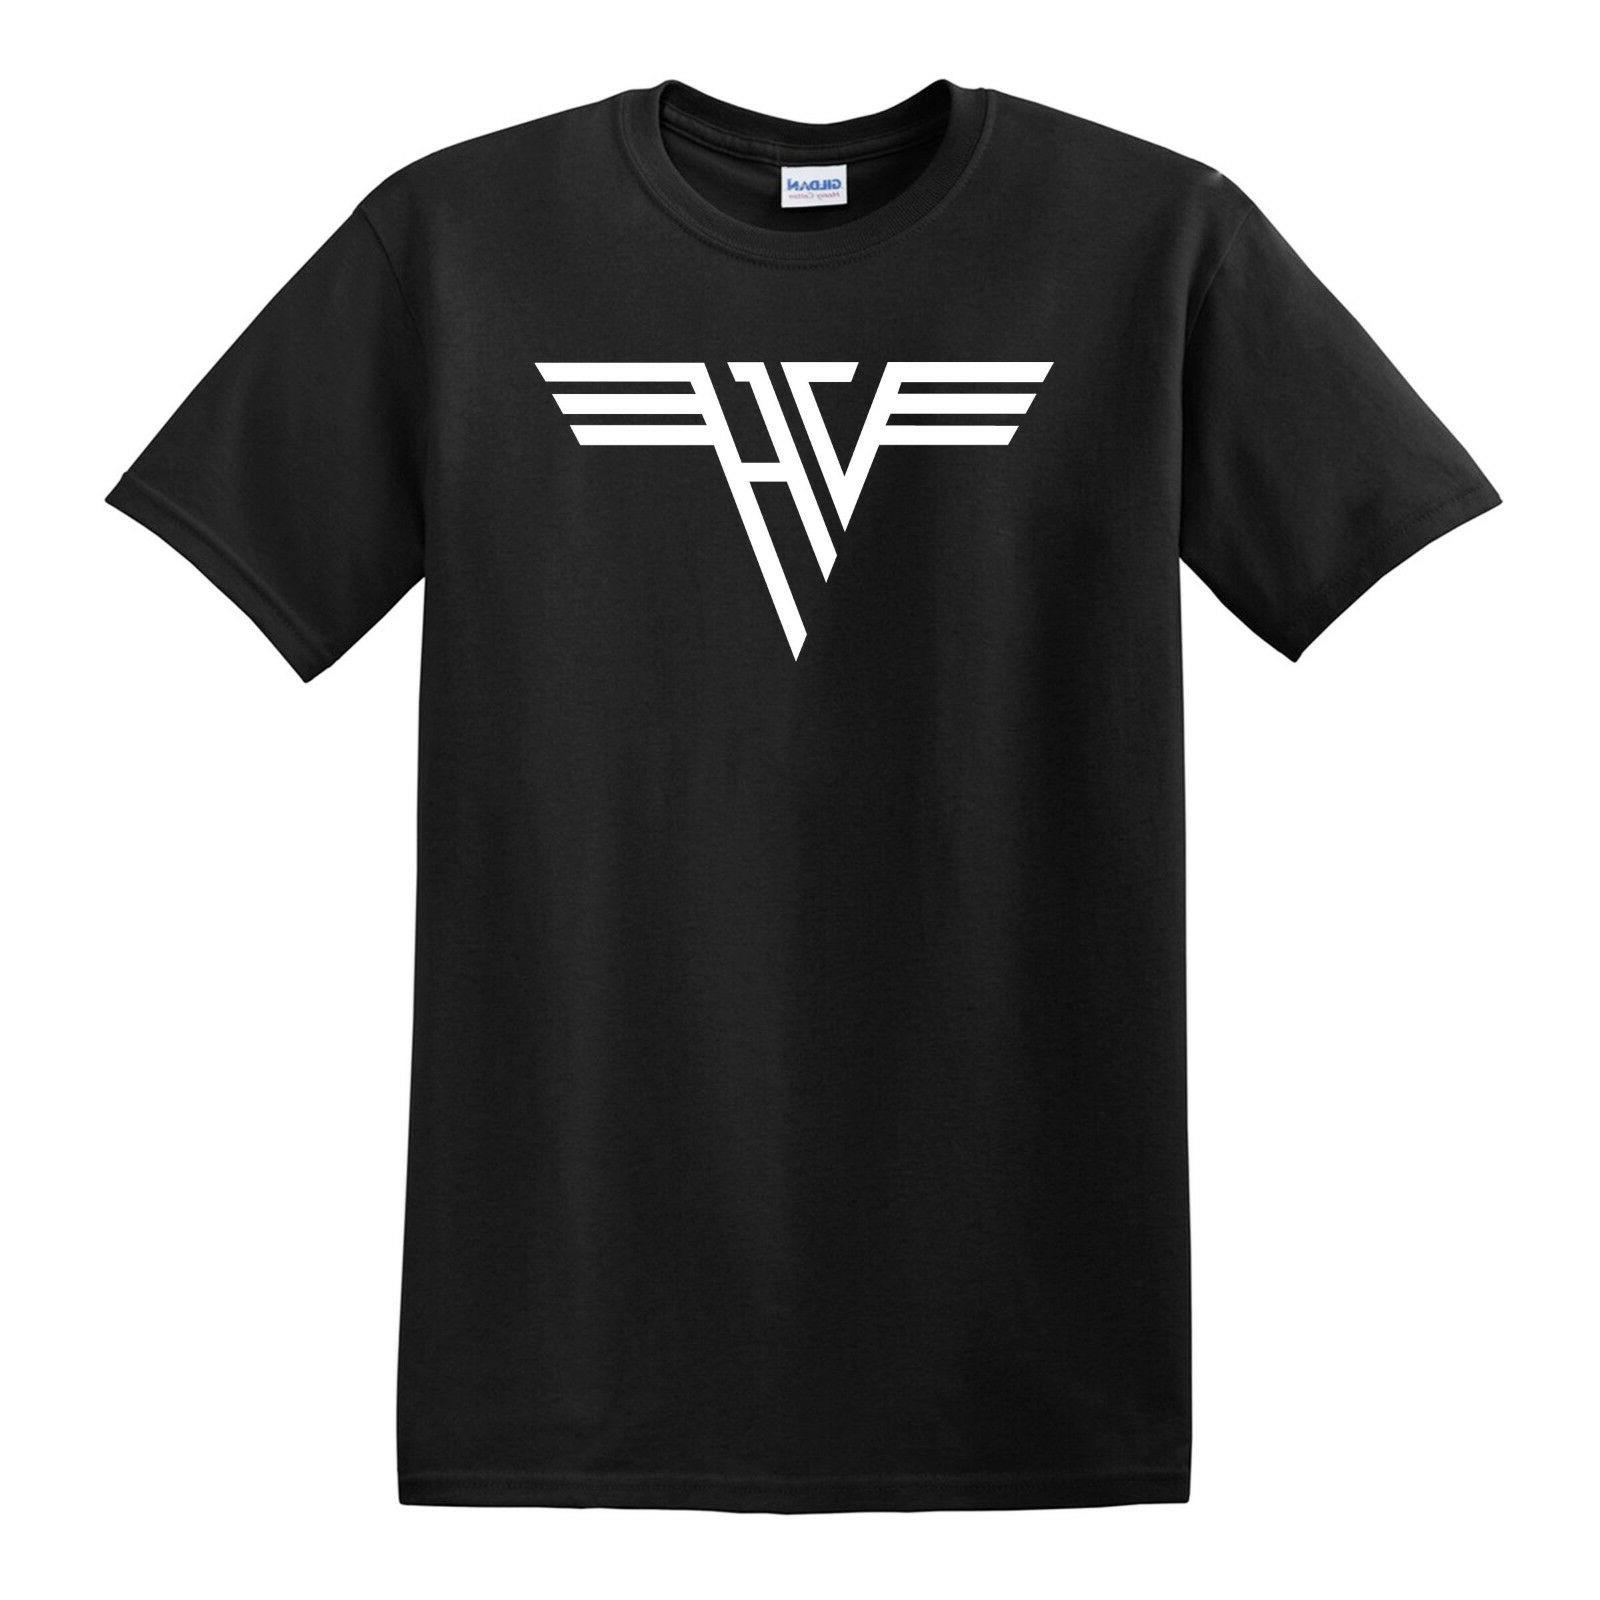 van halen t shirt classic rock band